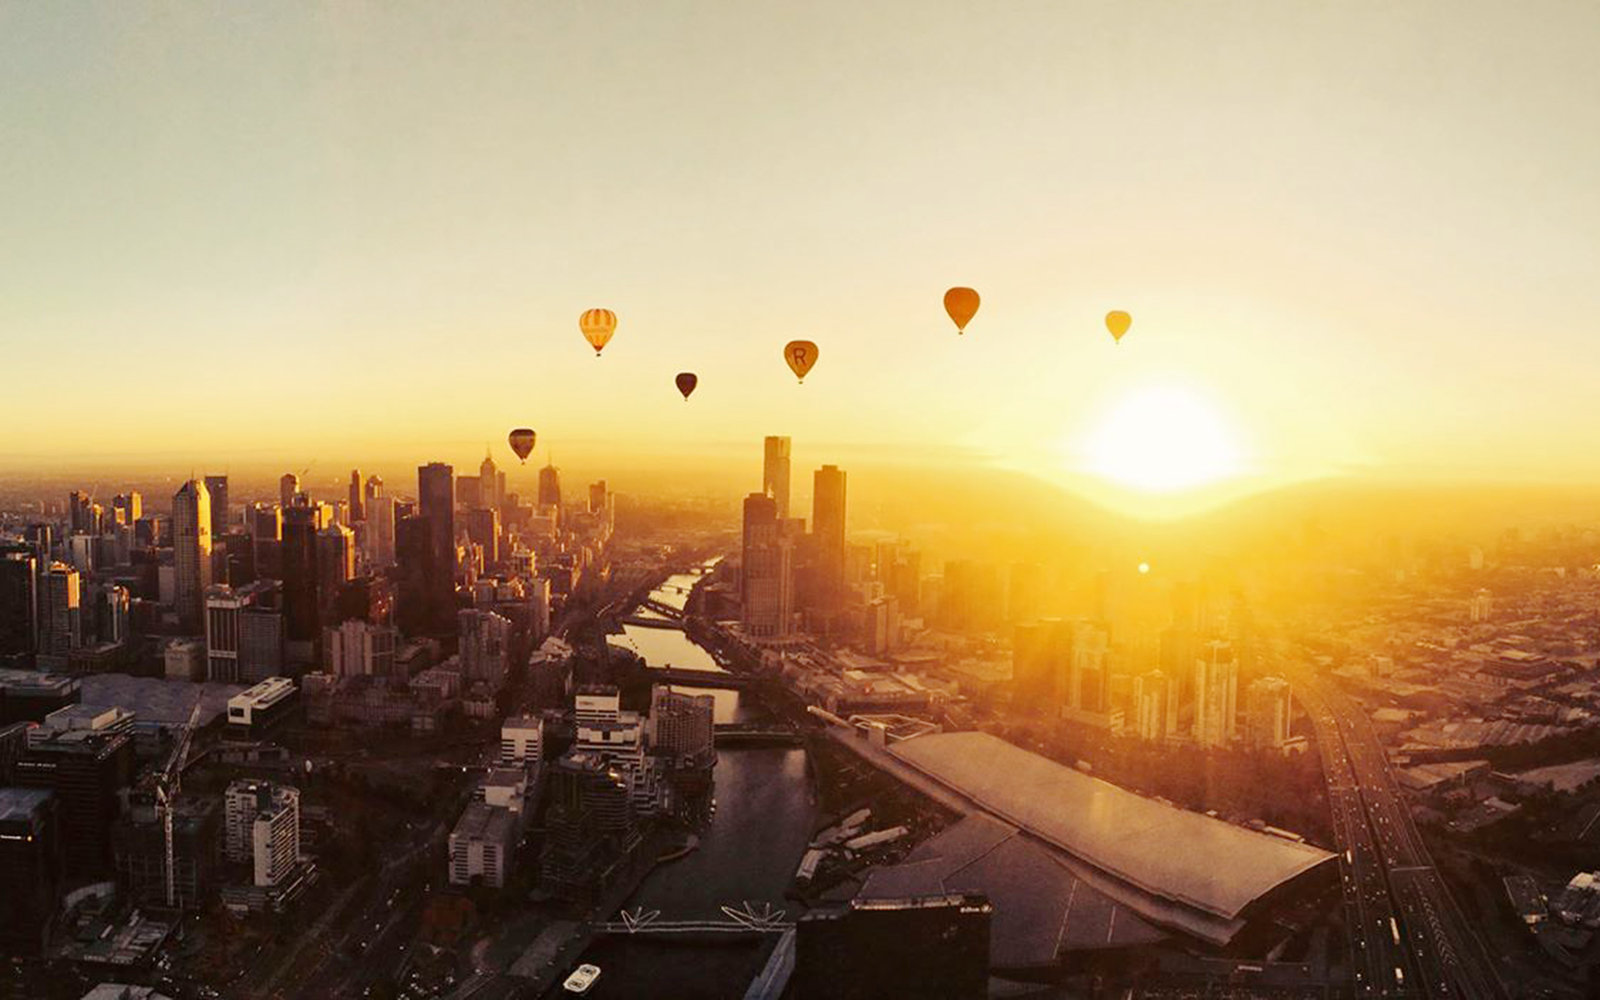 Over melbourne picture of global ballooning melbourne and yarra - Over Melbourne Picture Of Global Ballooning Melbourne And Yarra 46